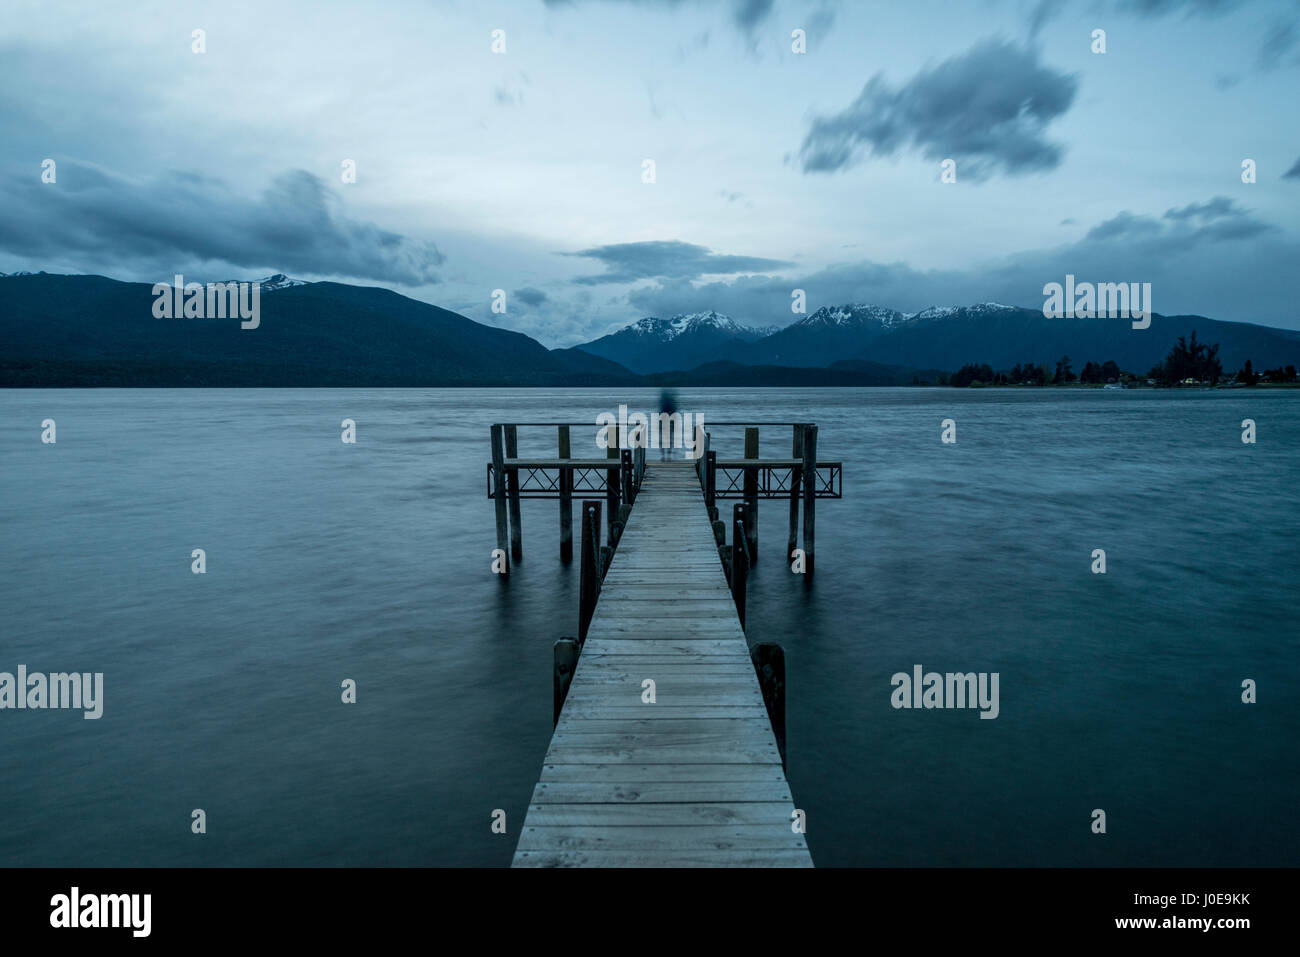 Cloudy sky over mountains, silhouette standing on dock, Lake Te Anau, Southland, New Zealand - Stock Image